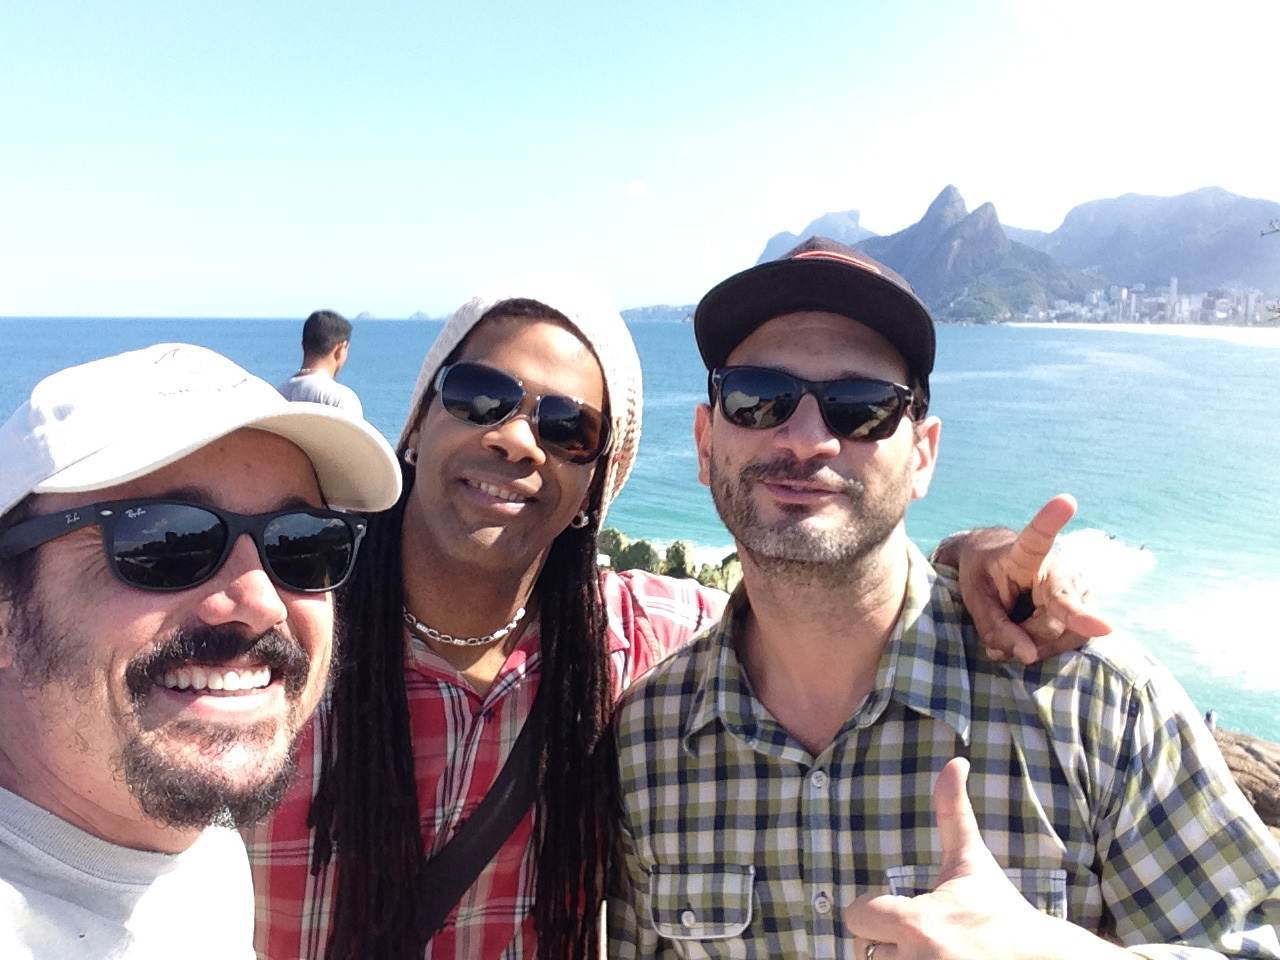 03 With Caio Junquiera & Andre Rebello, Copacabana, Rio 2014